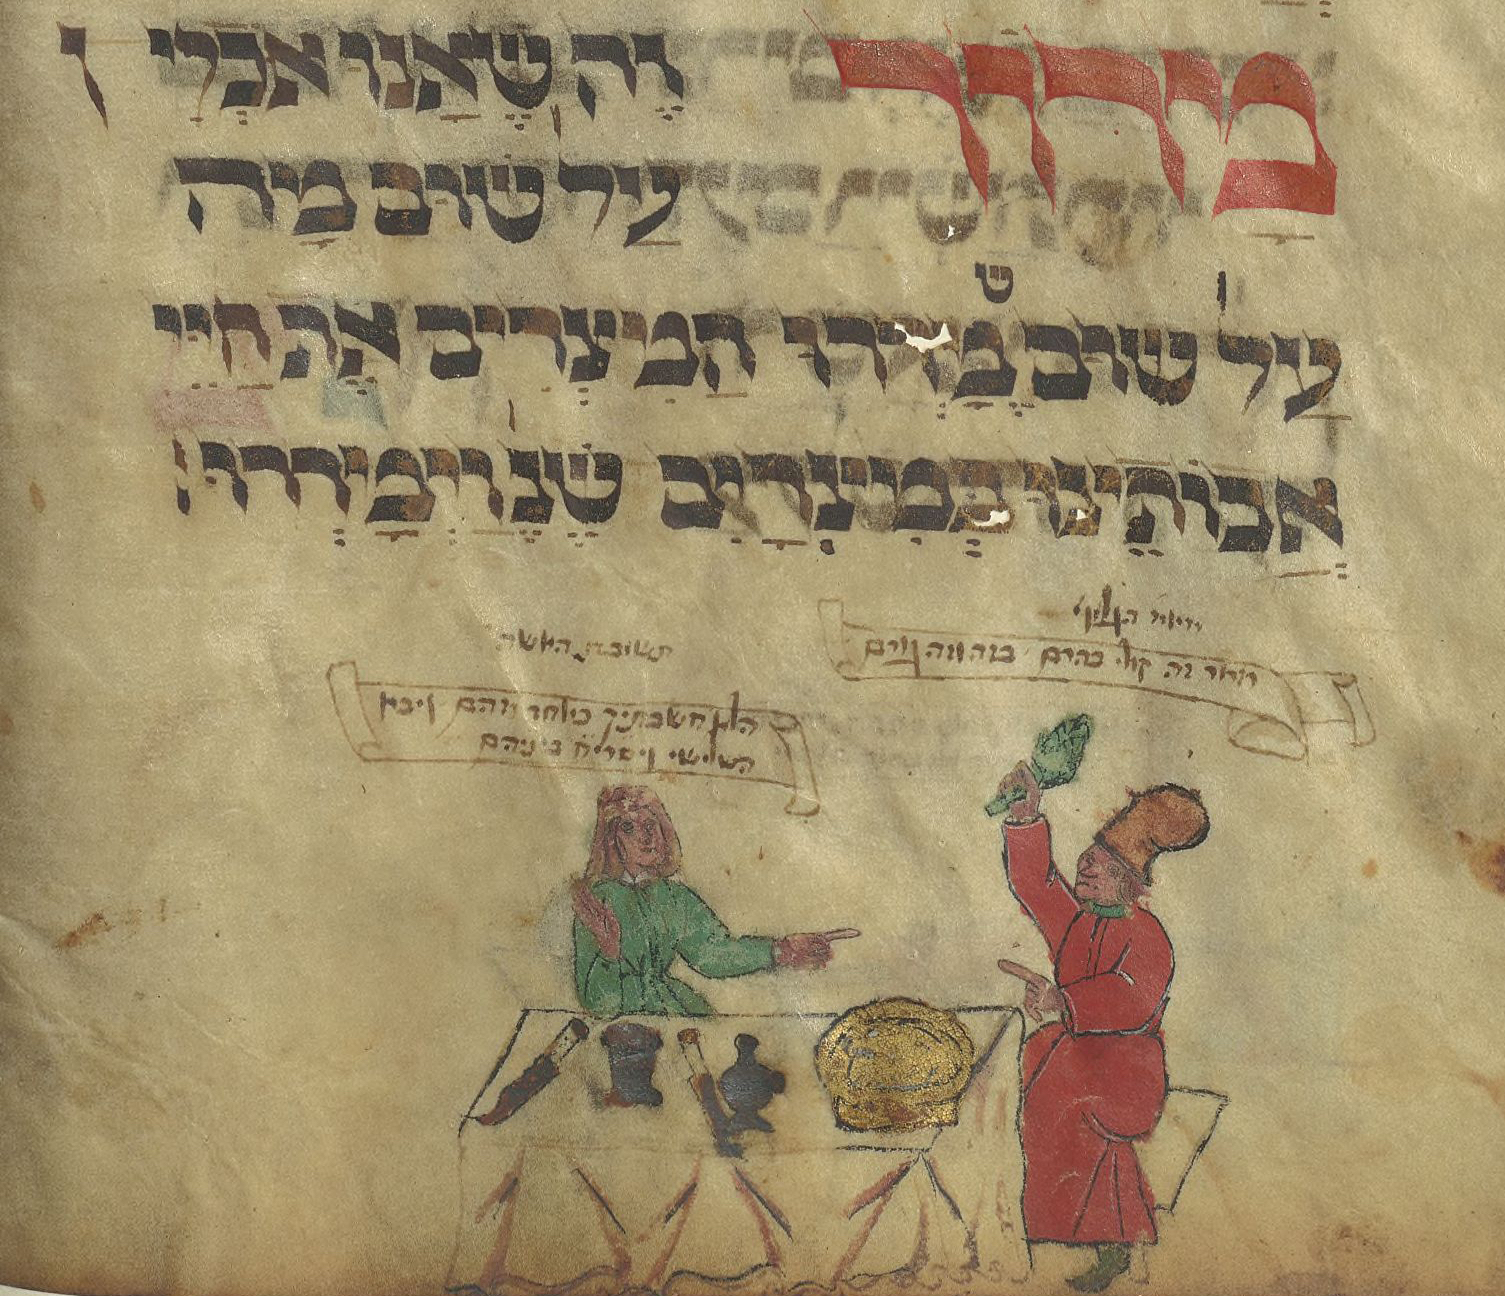 manuscript image of couple at Passover table